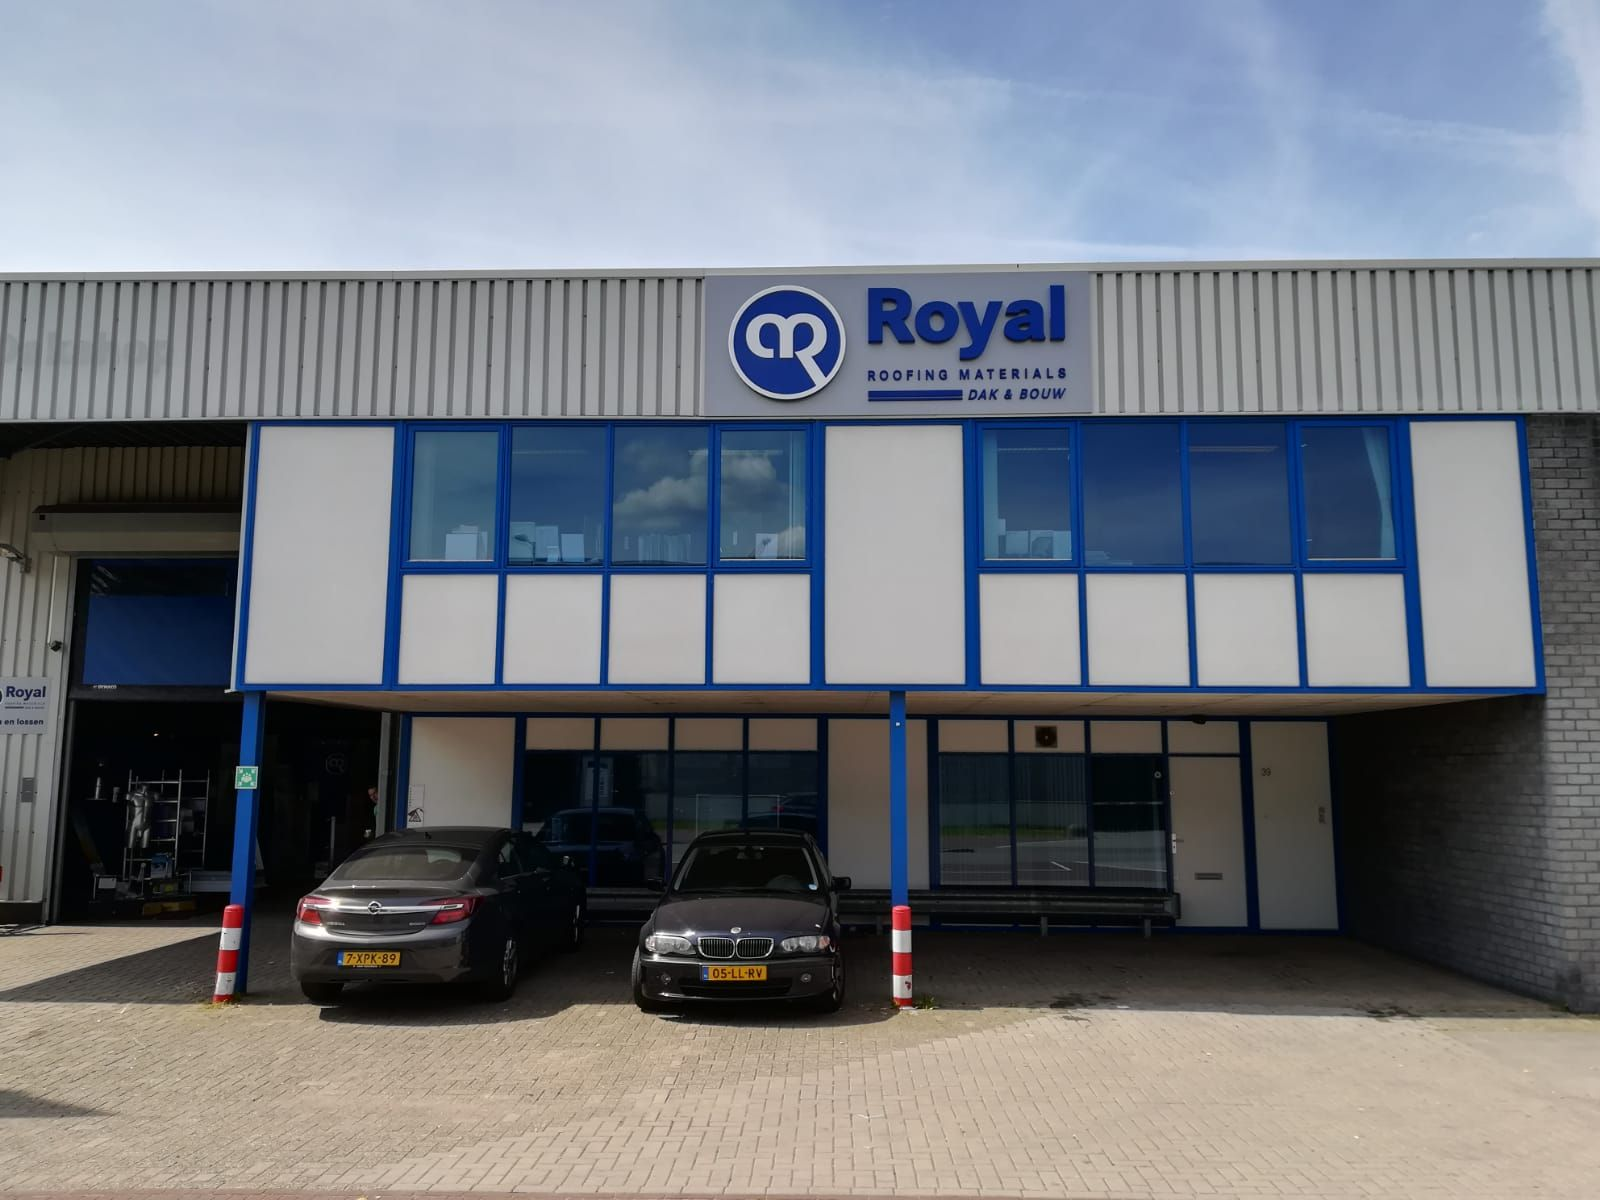 Royal dak & bouw materialen shop Amsterdam